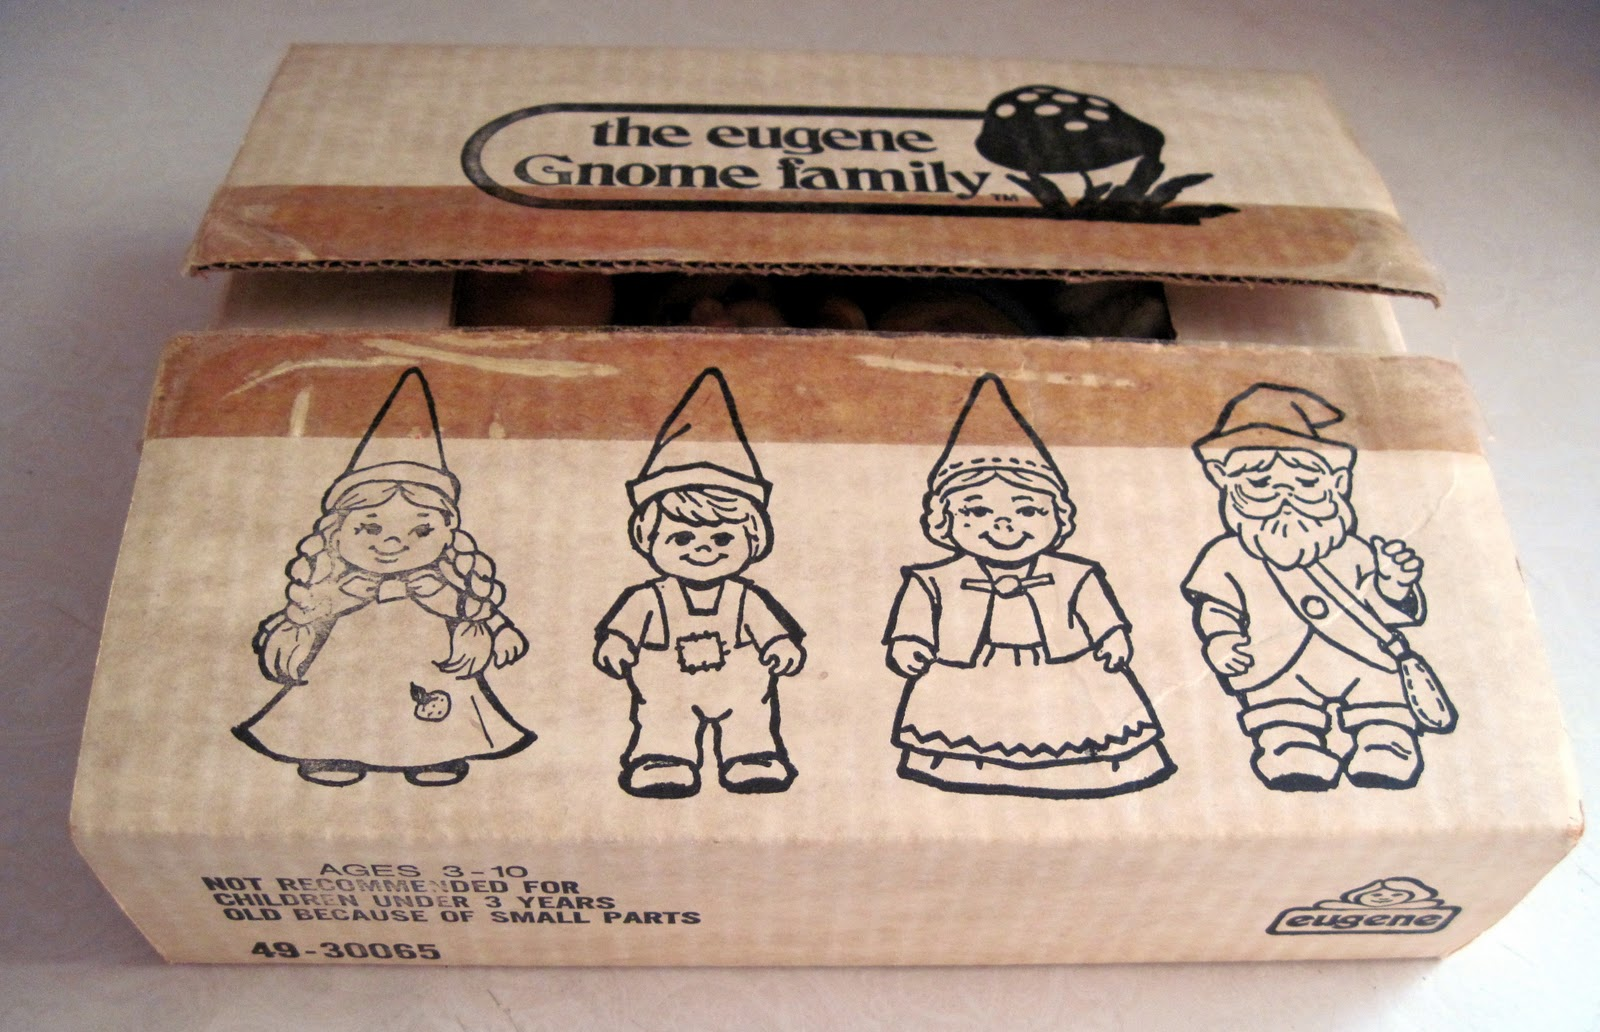 eugene%2Bgnomes%2Bcatalog%2Bbox Josh, 18, Texas, Married, Gay